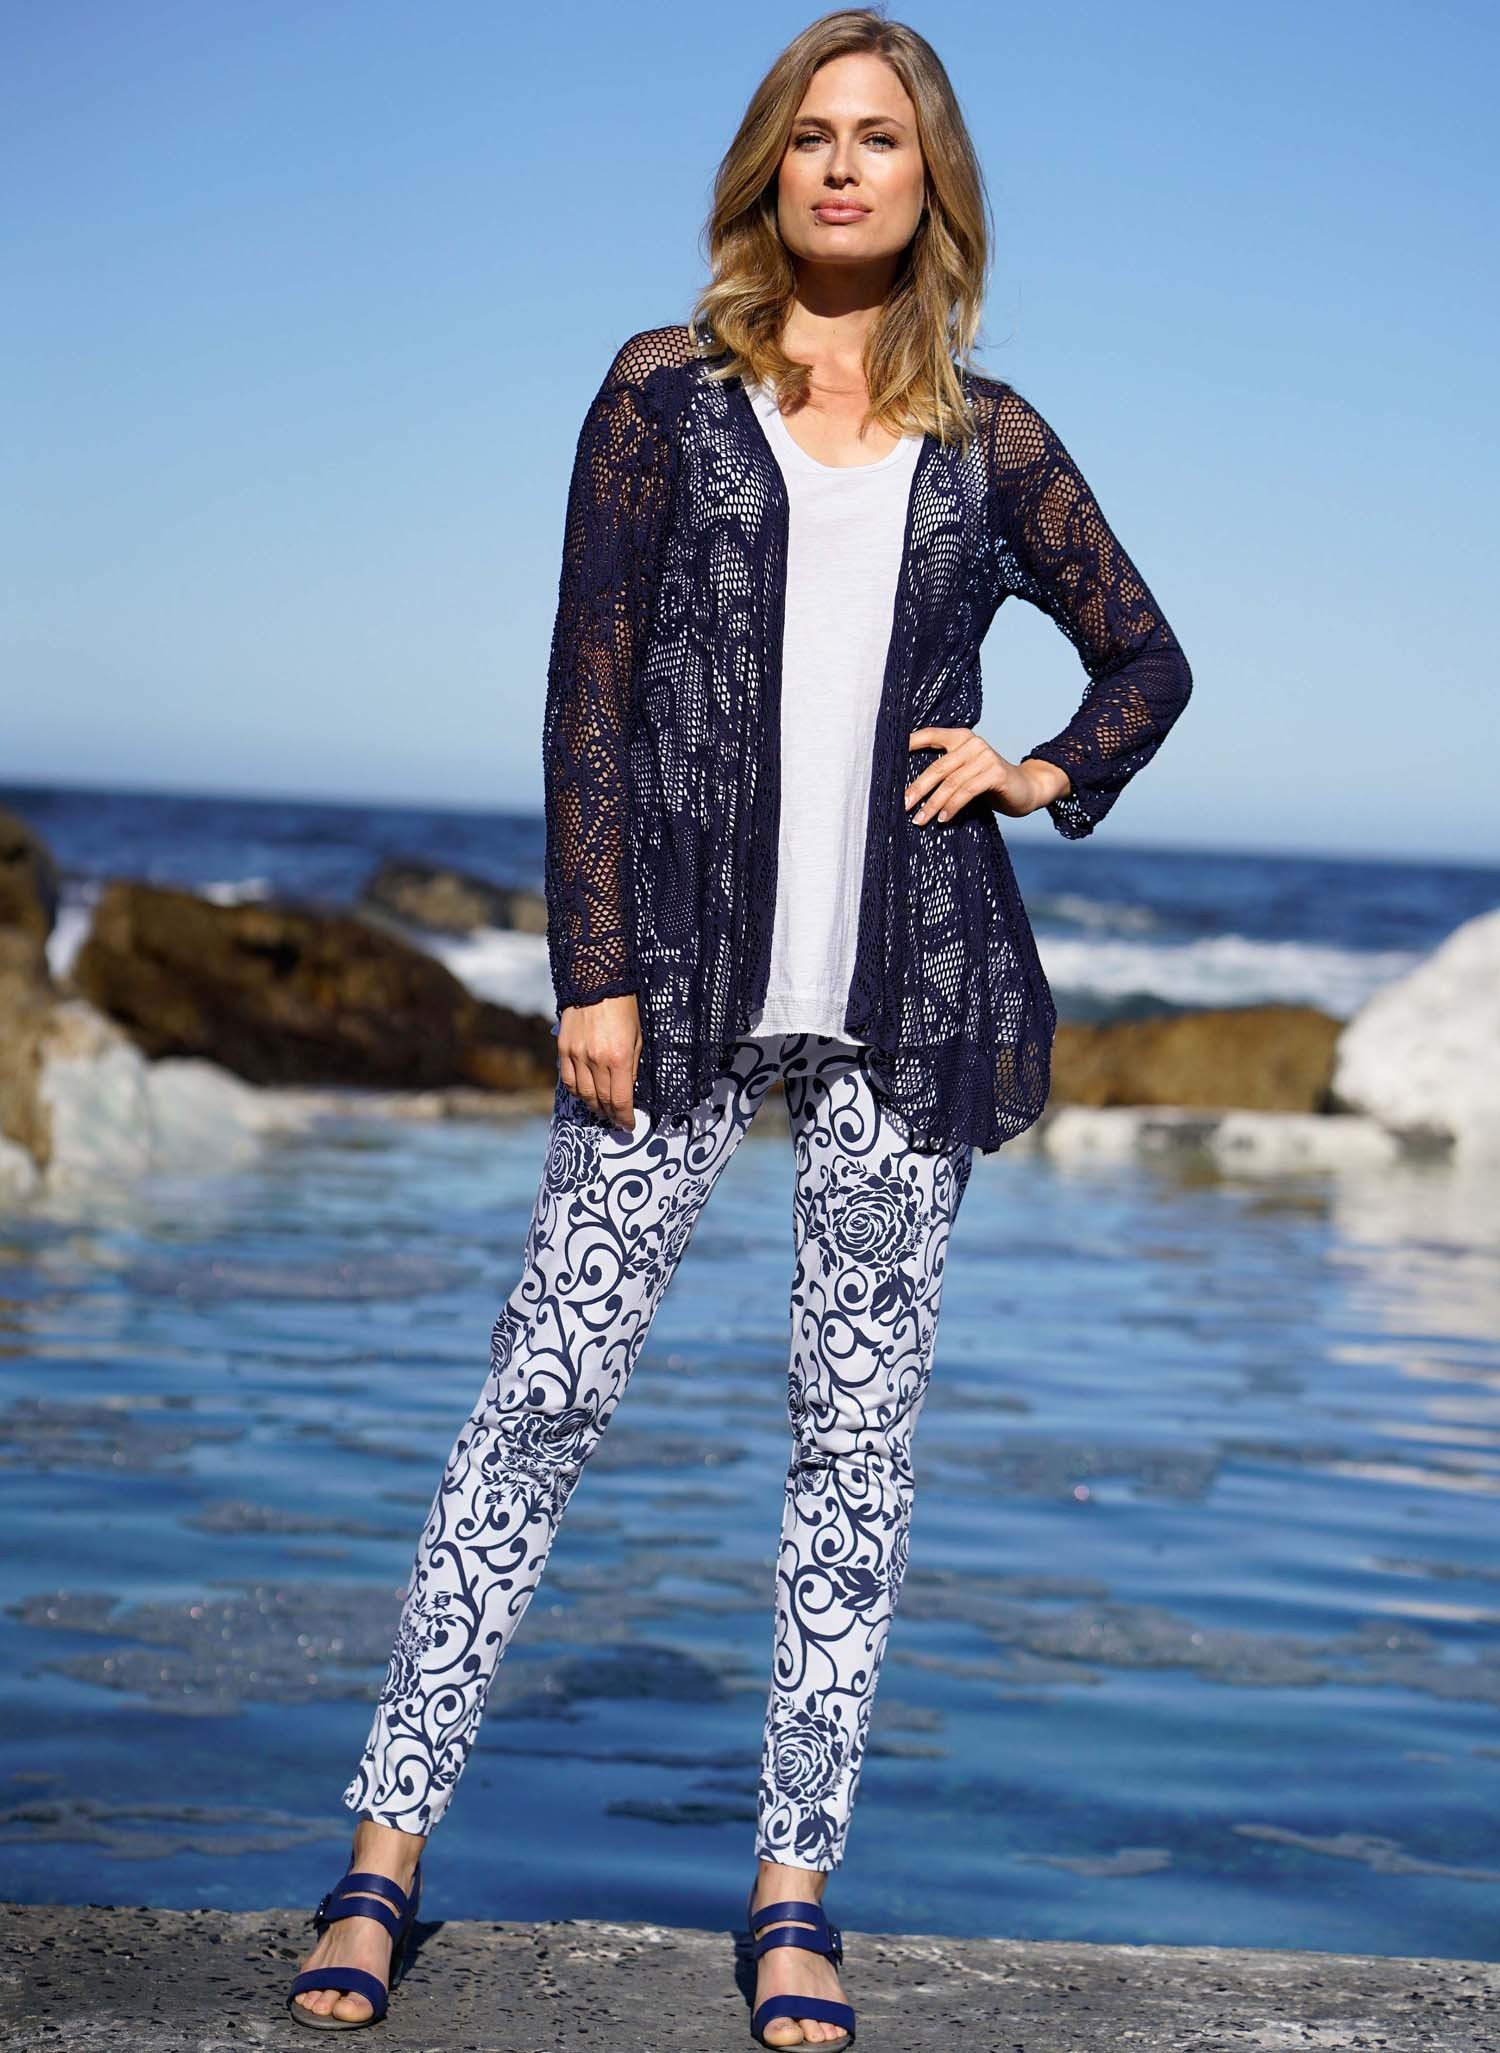 D-Hose,Floral marine/weiss L 204 - 1 - Ronja.ch